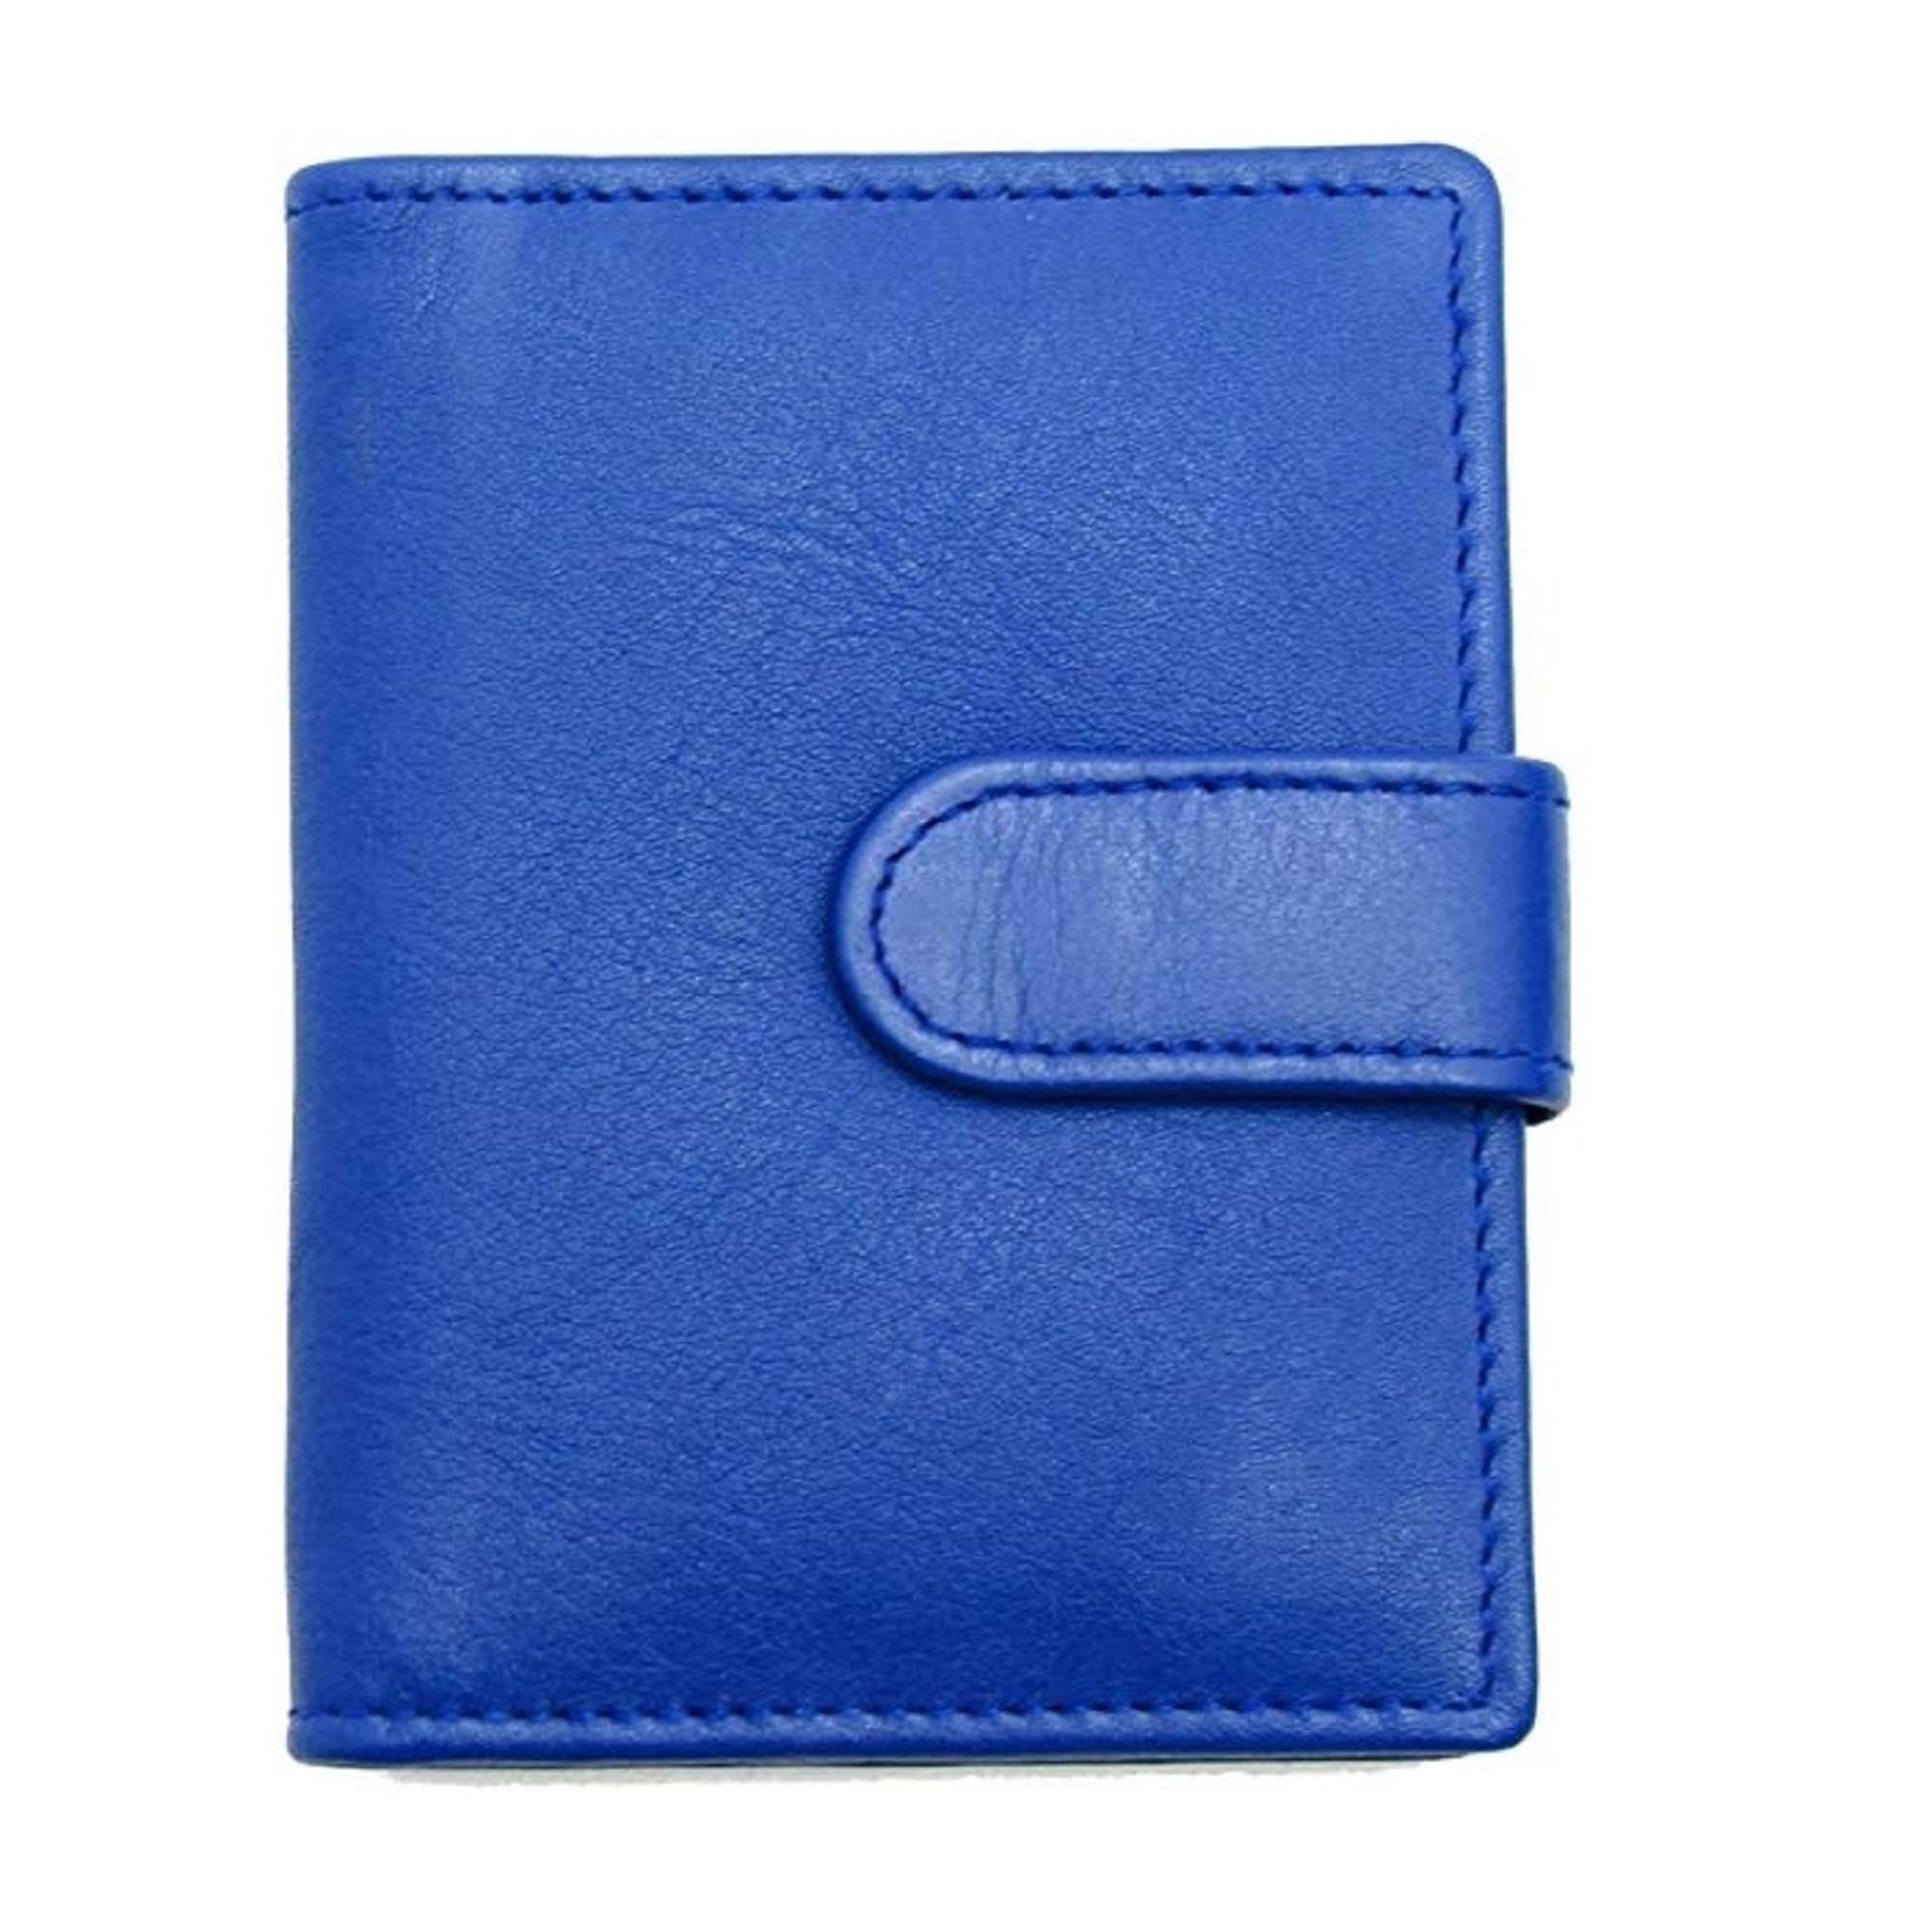 Leather Card Holder Wallet Manufacturers In Kolkata, Card Holder Wallet Suppliers In Kolkata, Card Holder Wallet Wholesalers In Kolkata, Card Holder Wallet Traders In Kolkata